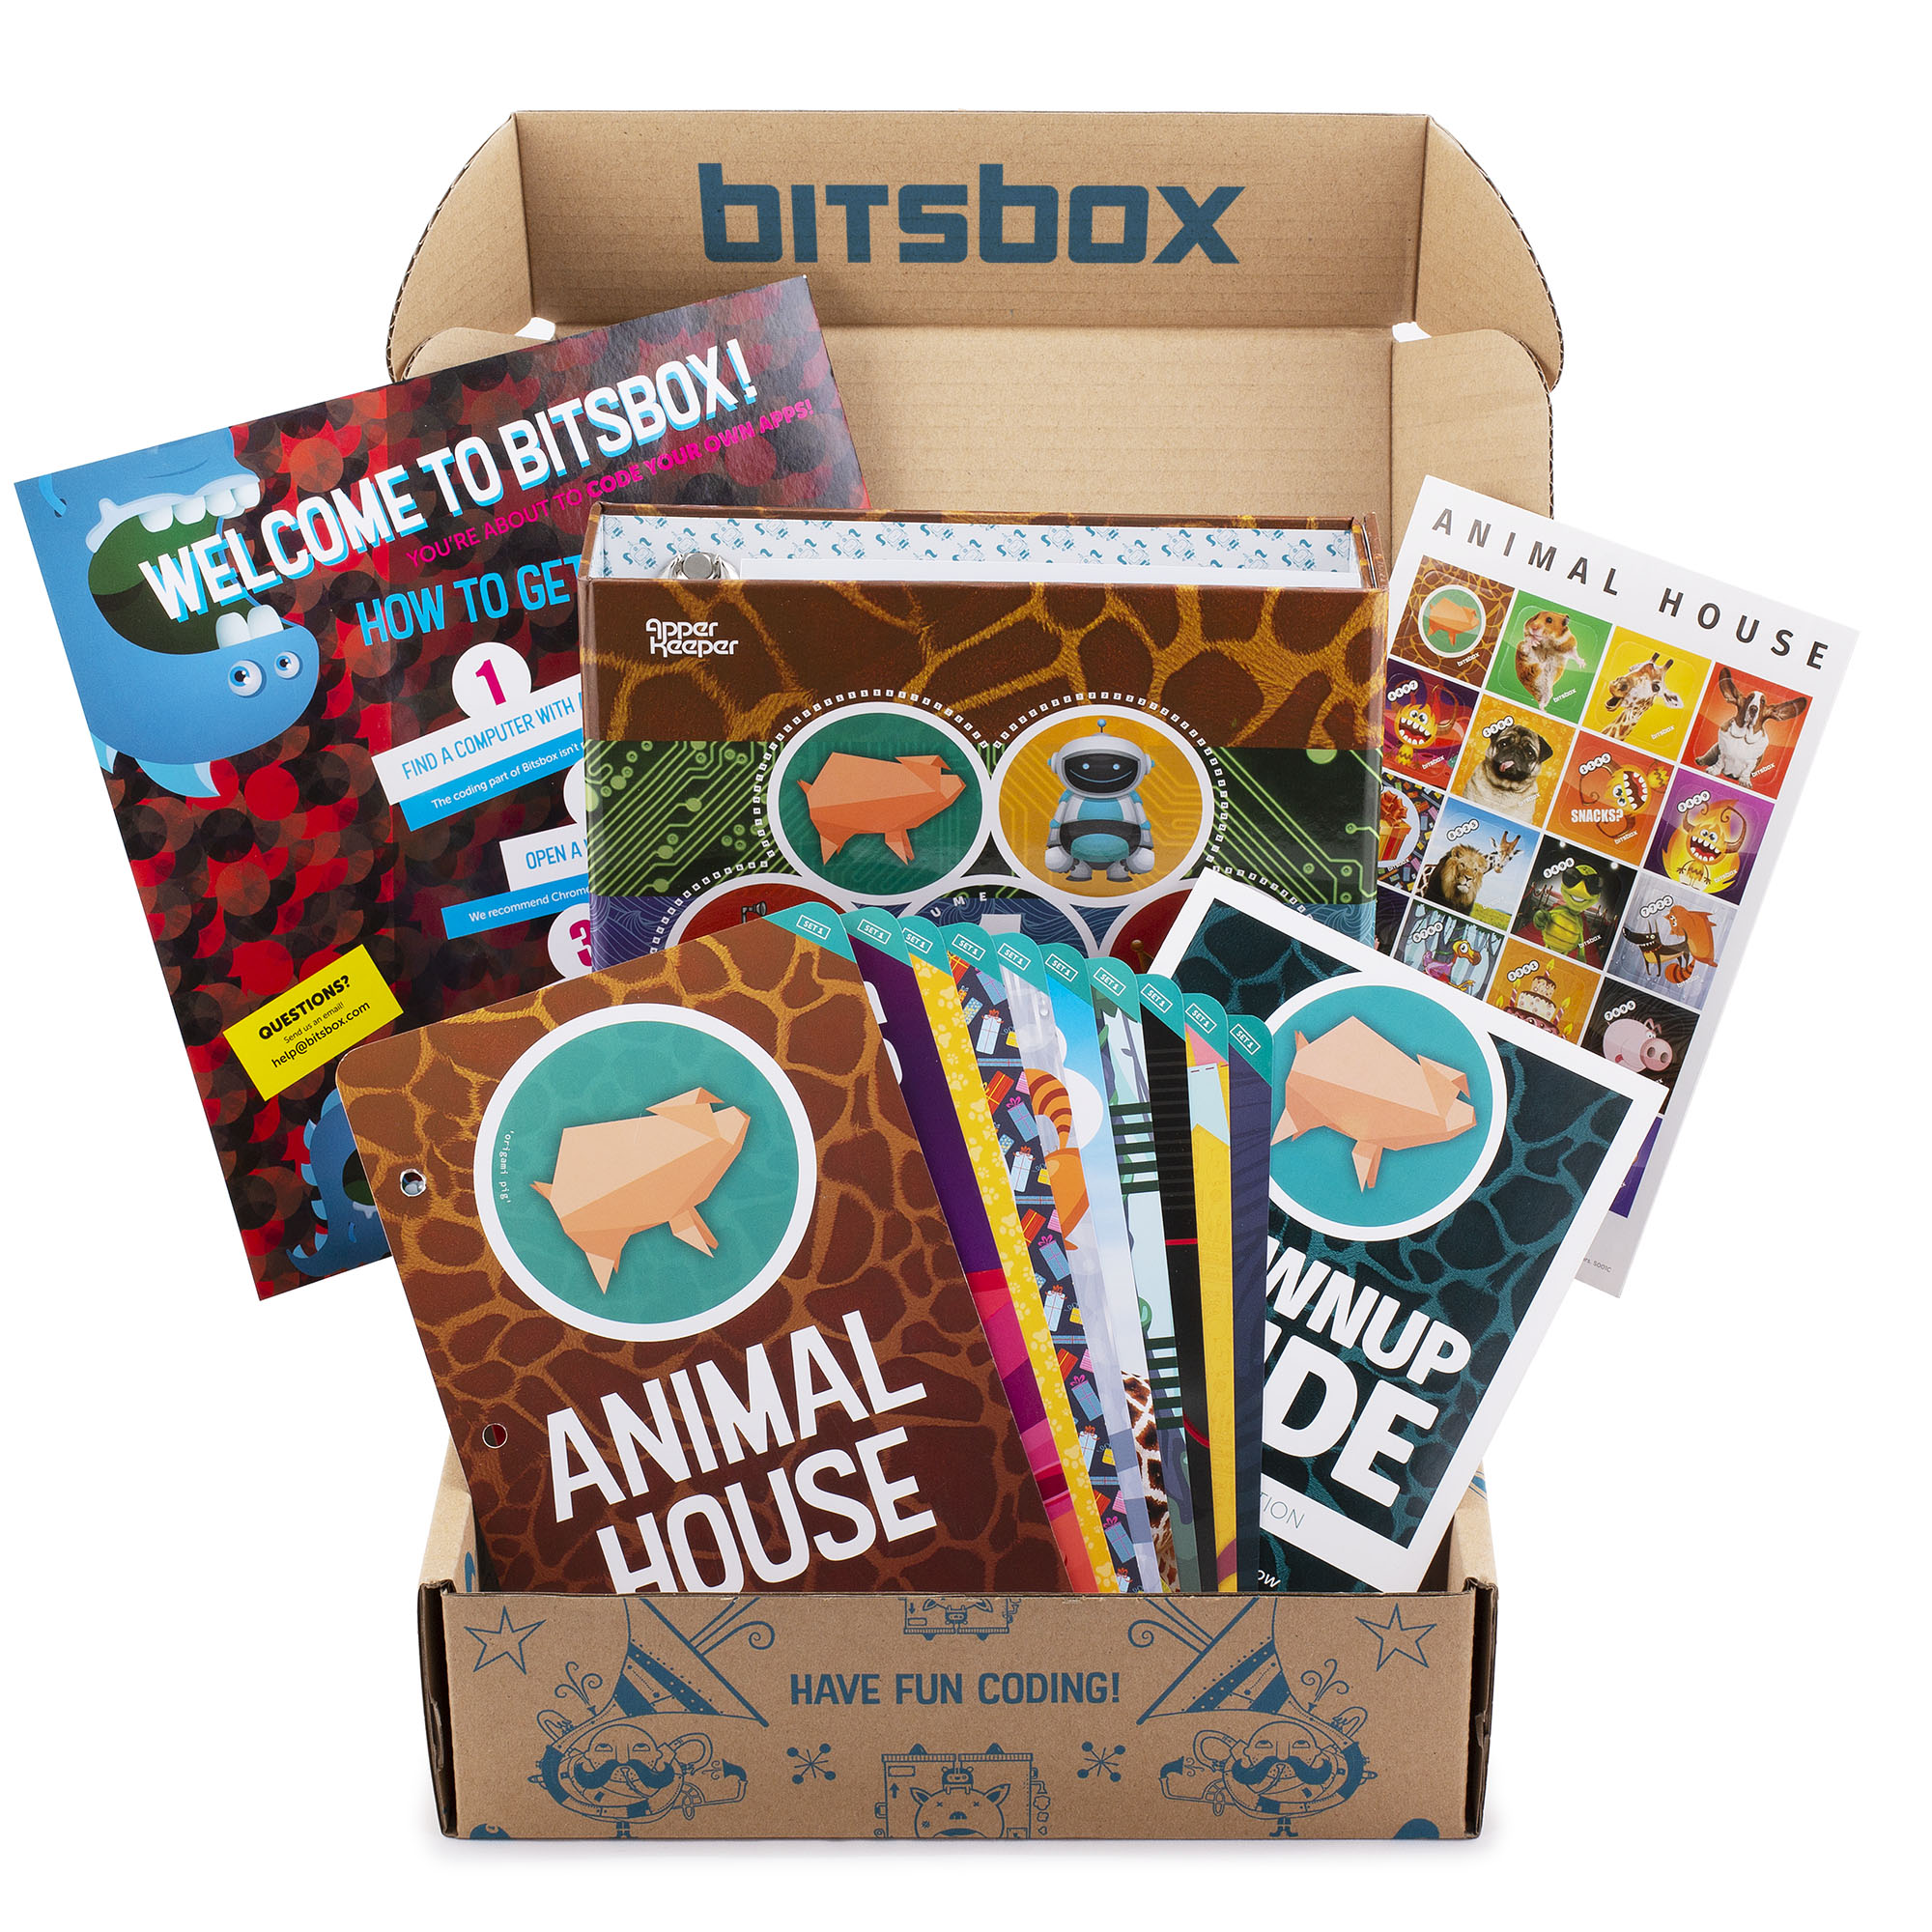 Bitsbox - Coding Subscription Box for Kids | Great for Ages 6-12